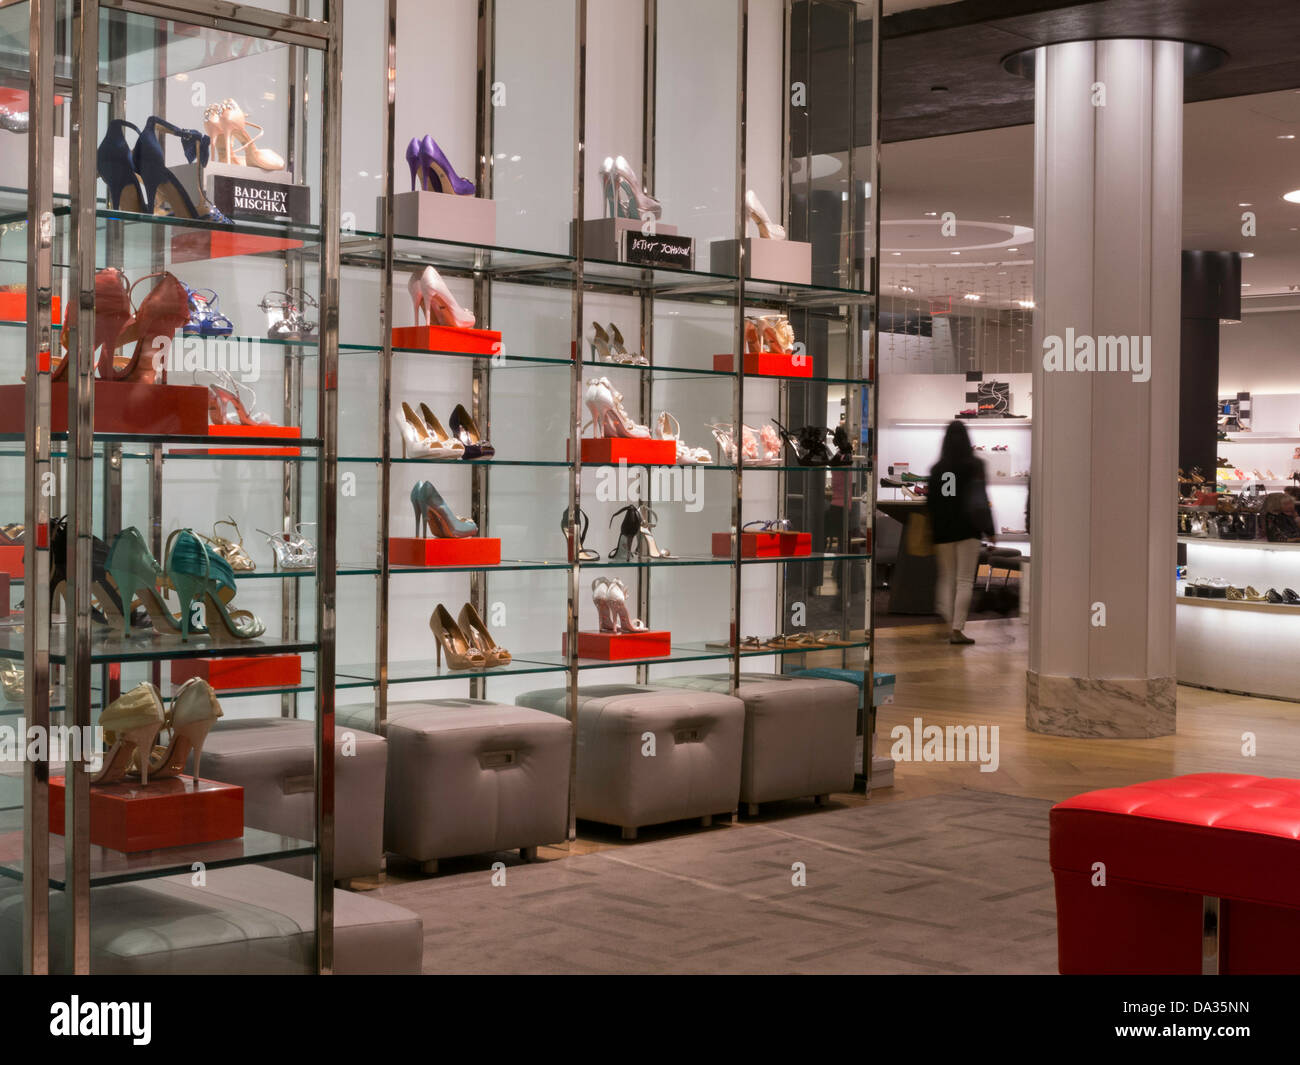 Hudson's Bay opens the largest women's shoe store in Canada at its